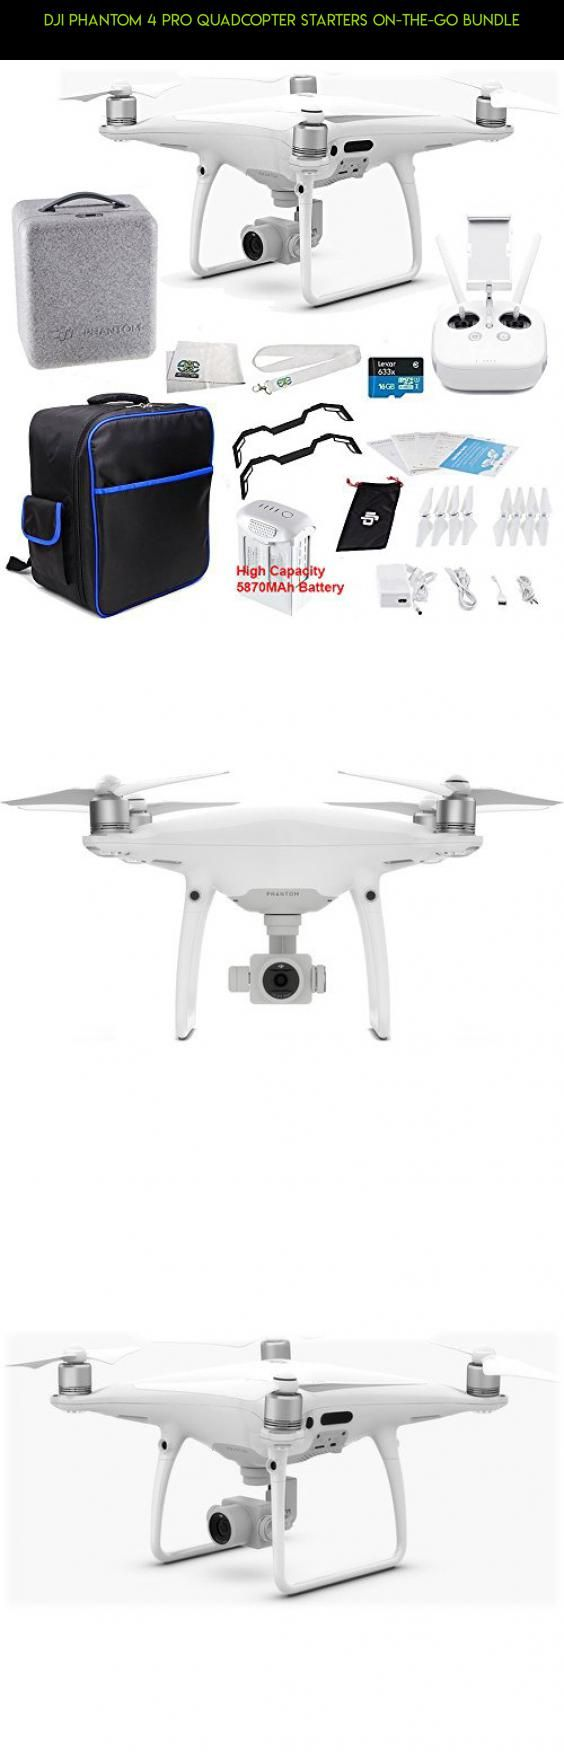 DJI Phantom 4 PRO Quadcopter Starters On-The-Go Bundle #pro #products #phantom #parts #racing #bundle #kit #plans #gadgets #4 #technology #tech #dji #camera #fpv #drone #quadcopter #drone #kit #shopping